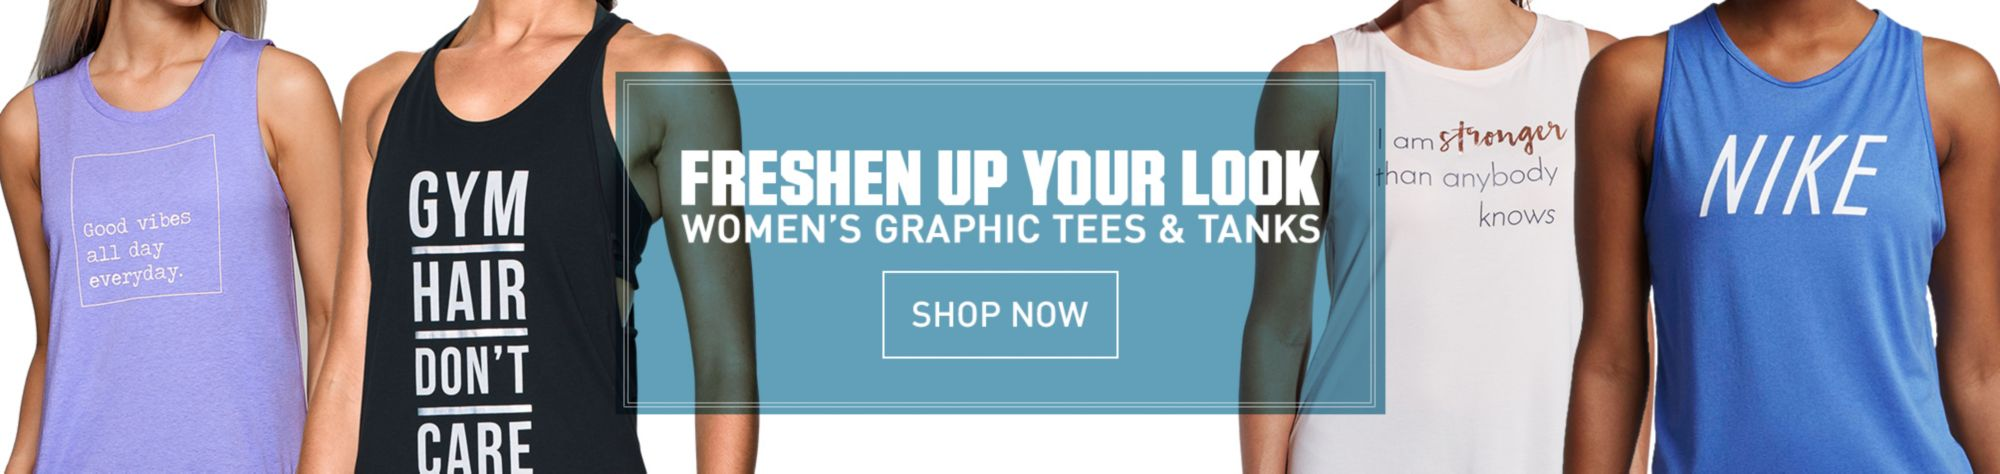 Women's Graphic Tees & Tanks